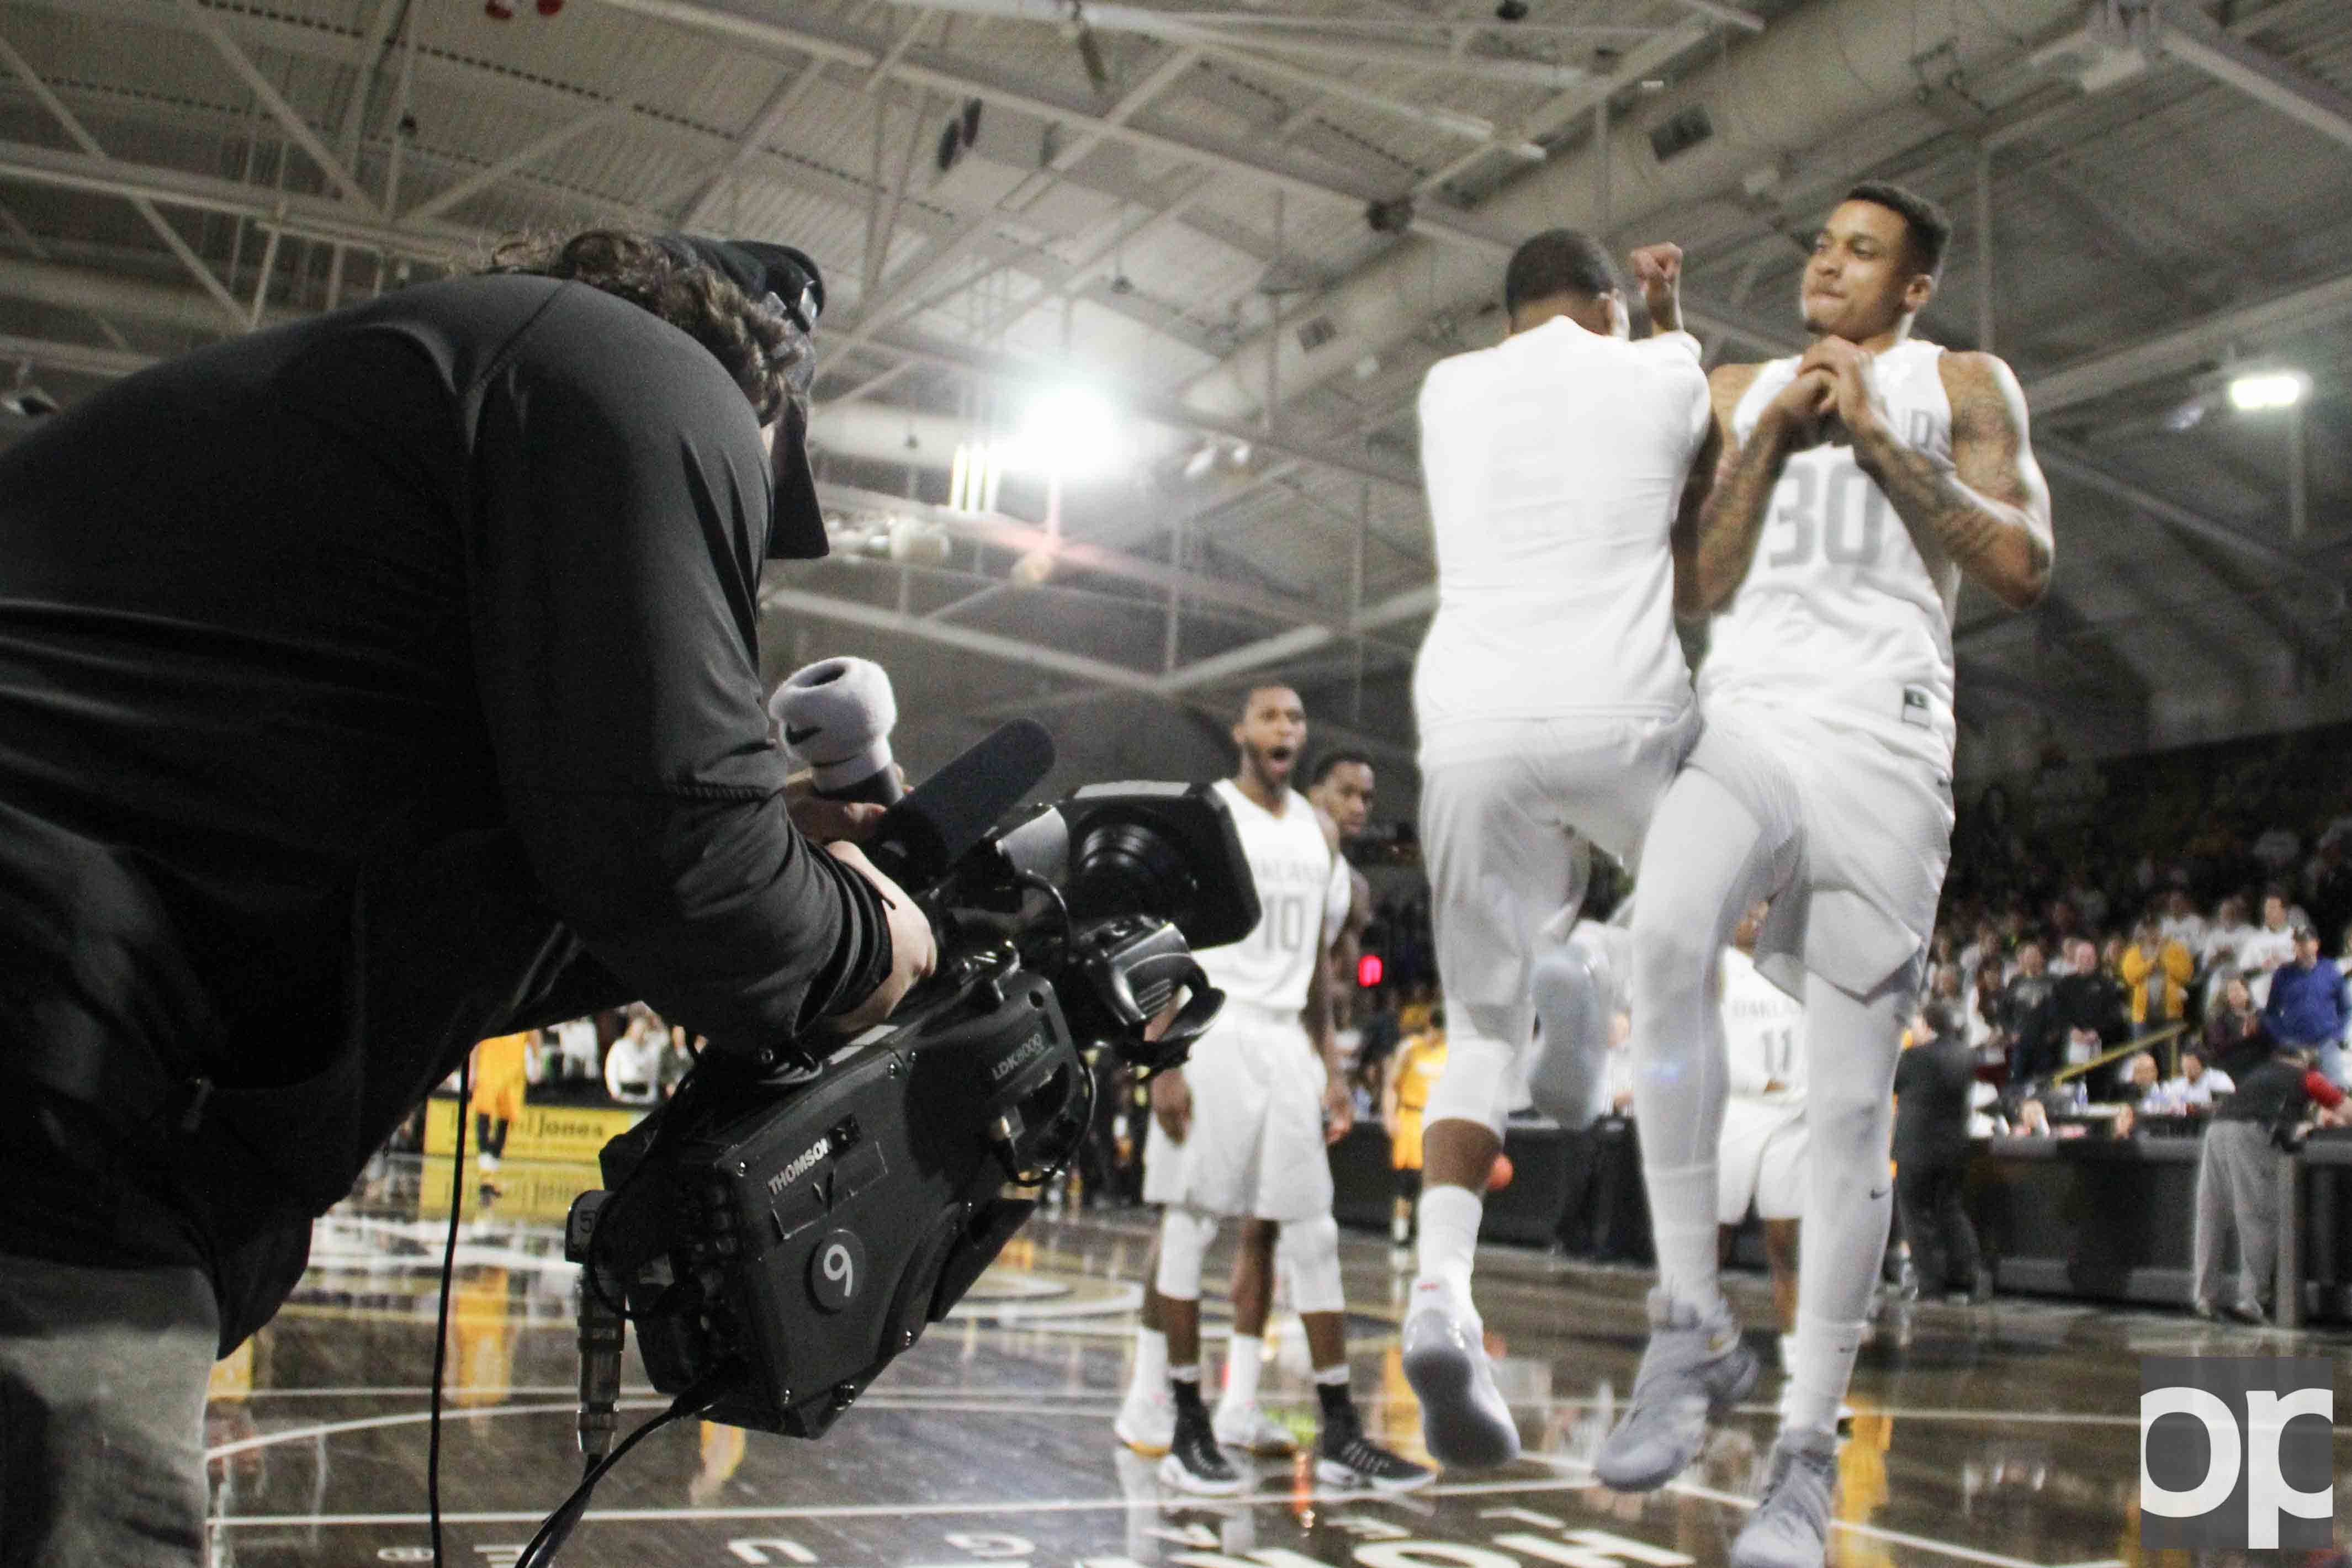 The men's basketball team enters the Motor City Madness tournament on March 4 as the No. 1 seed.